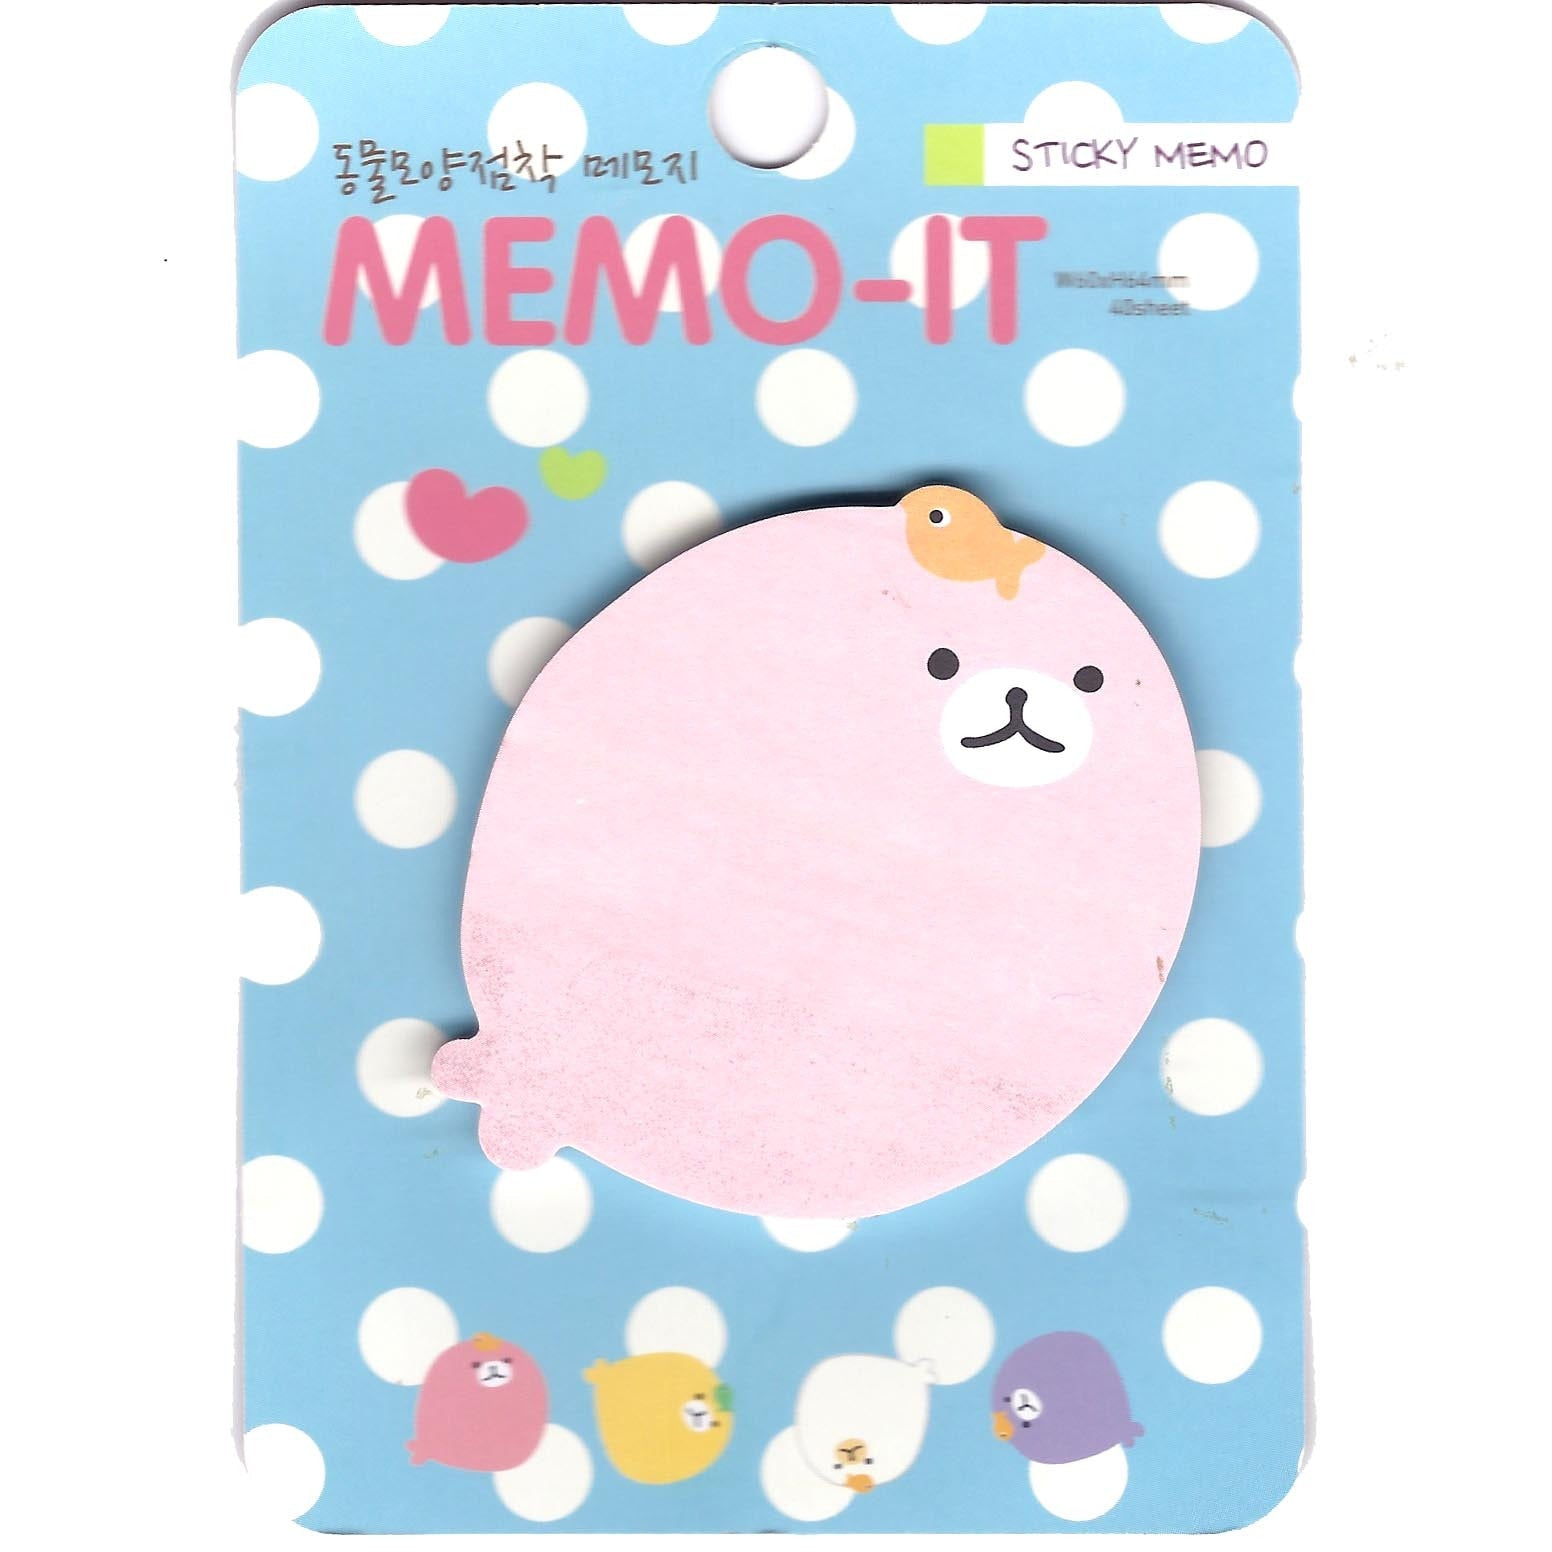 Pink Baby Seal Shaped Memo Post-it Note Pad | Animal Themed Stationery